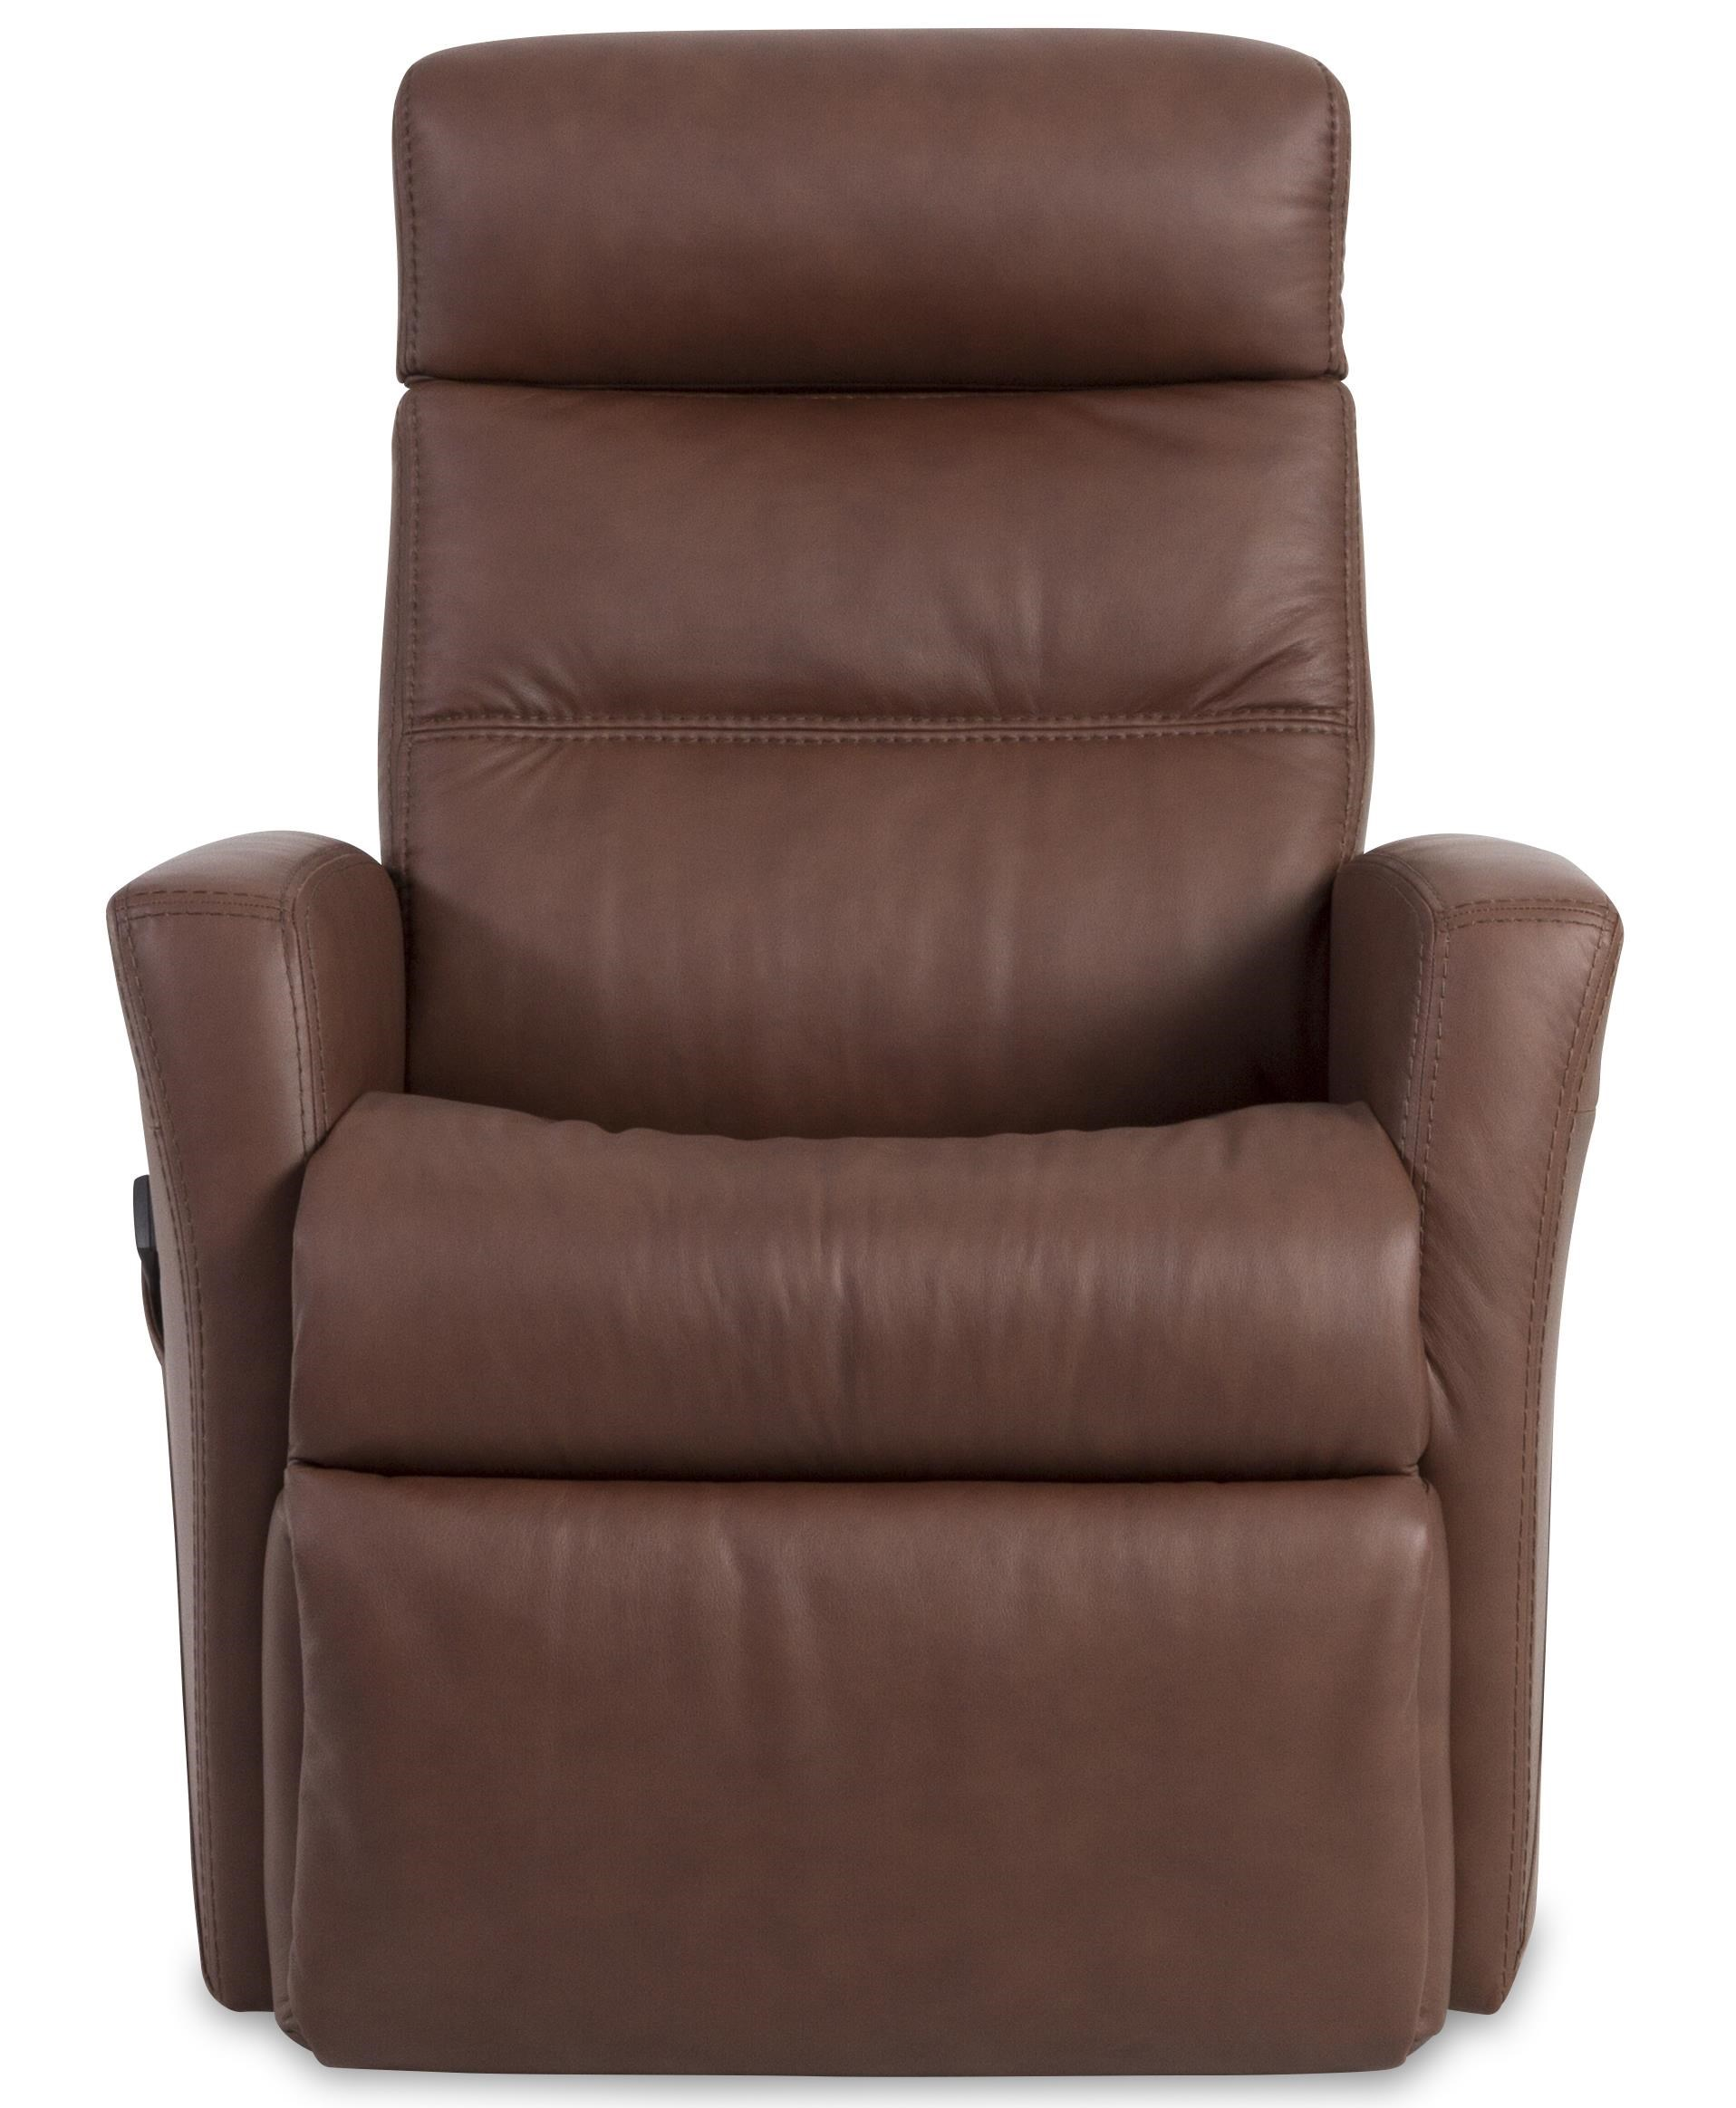 Divani Recliner Chair Img Norway Divani Large Multi Function Dual Motor Lift Chair With